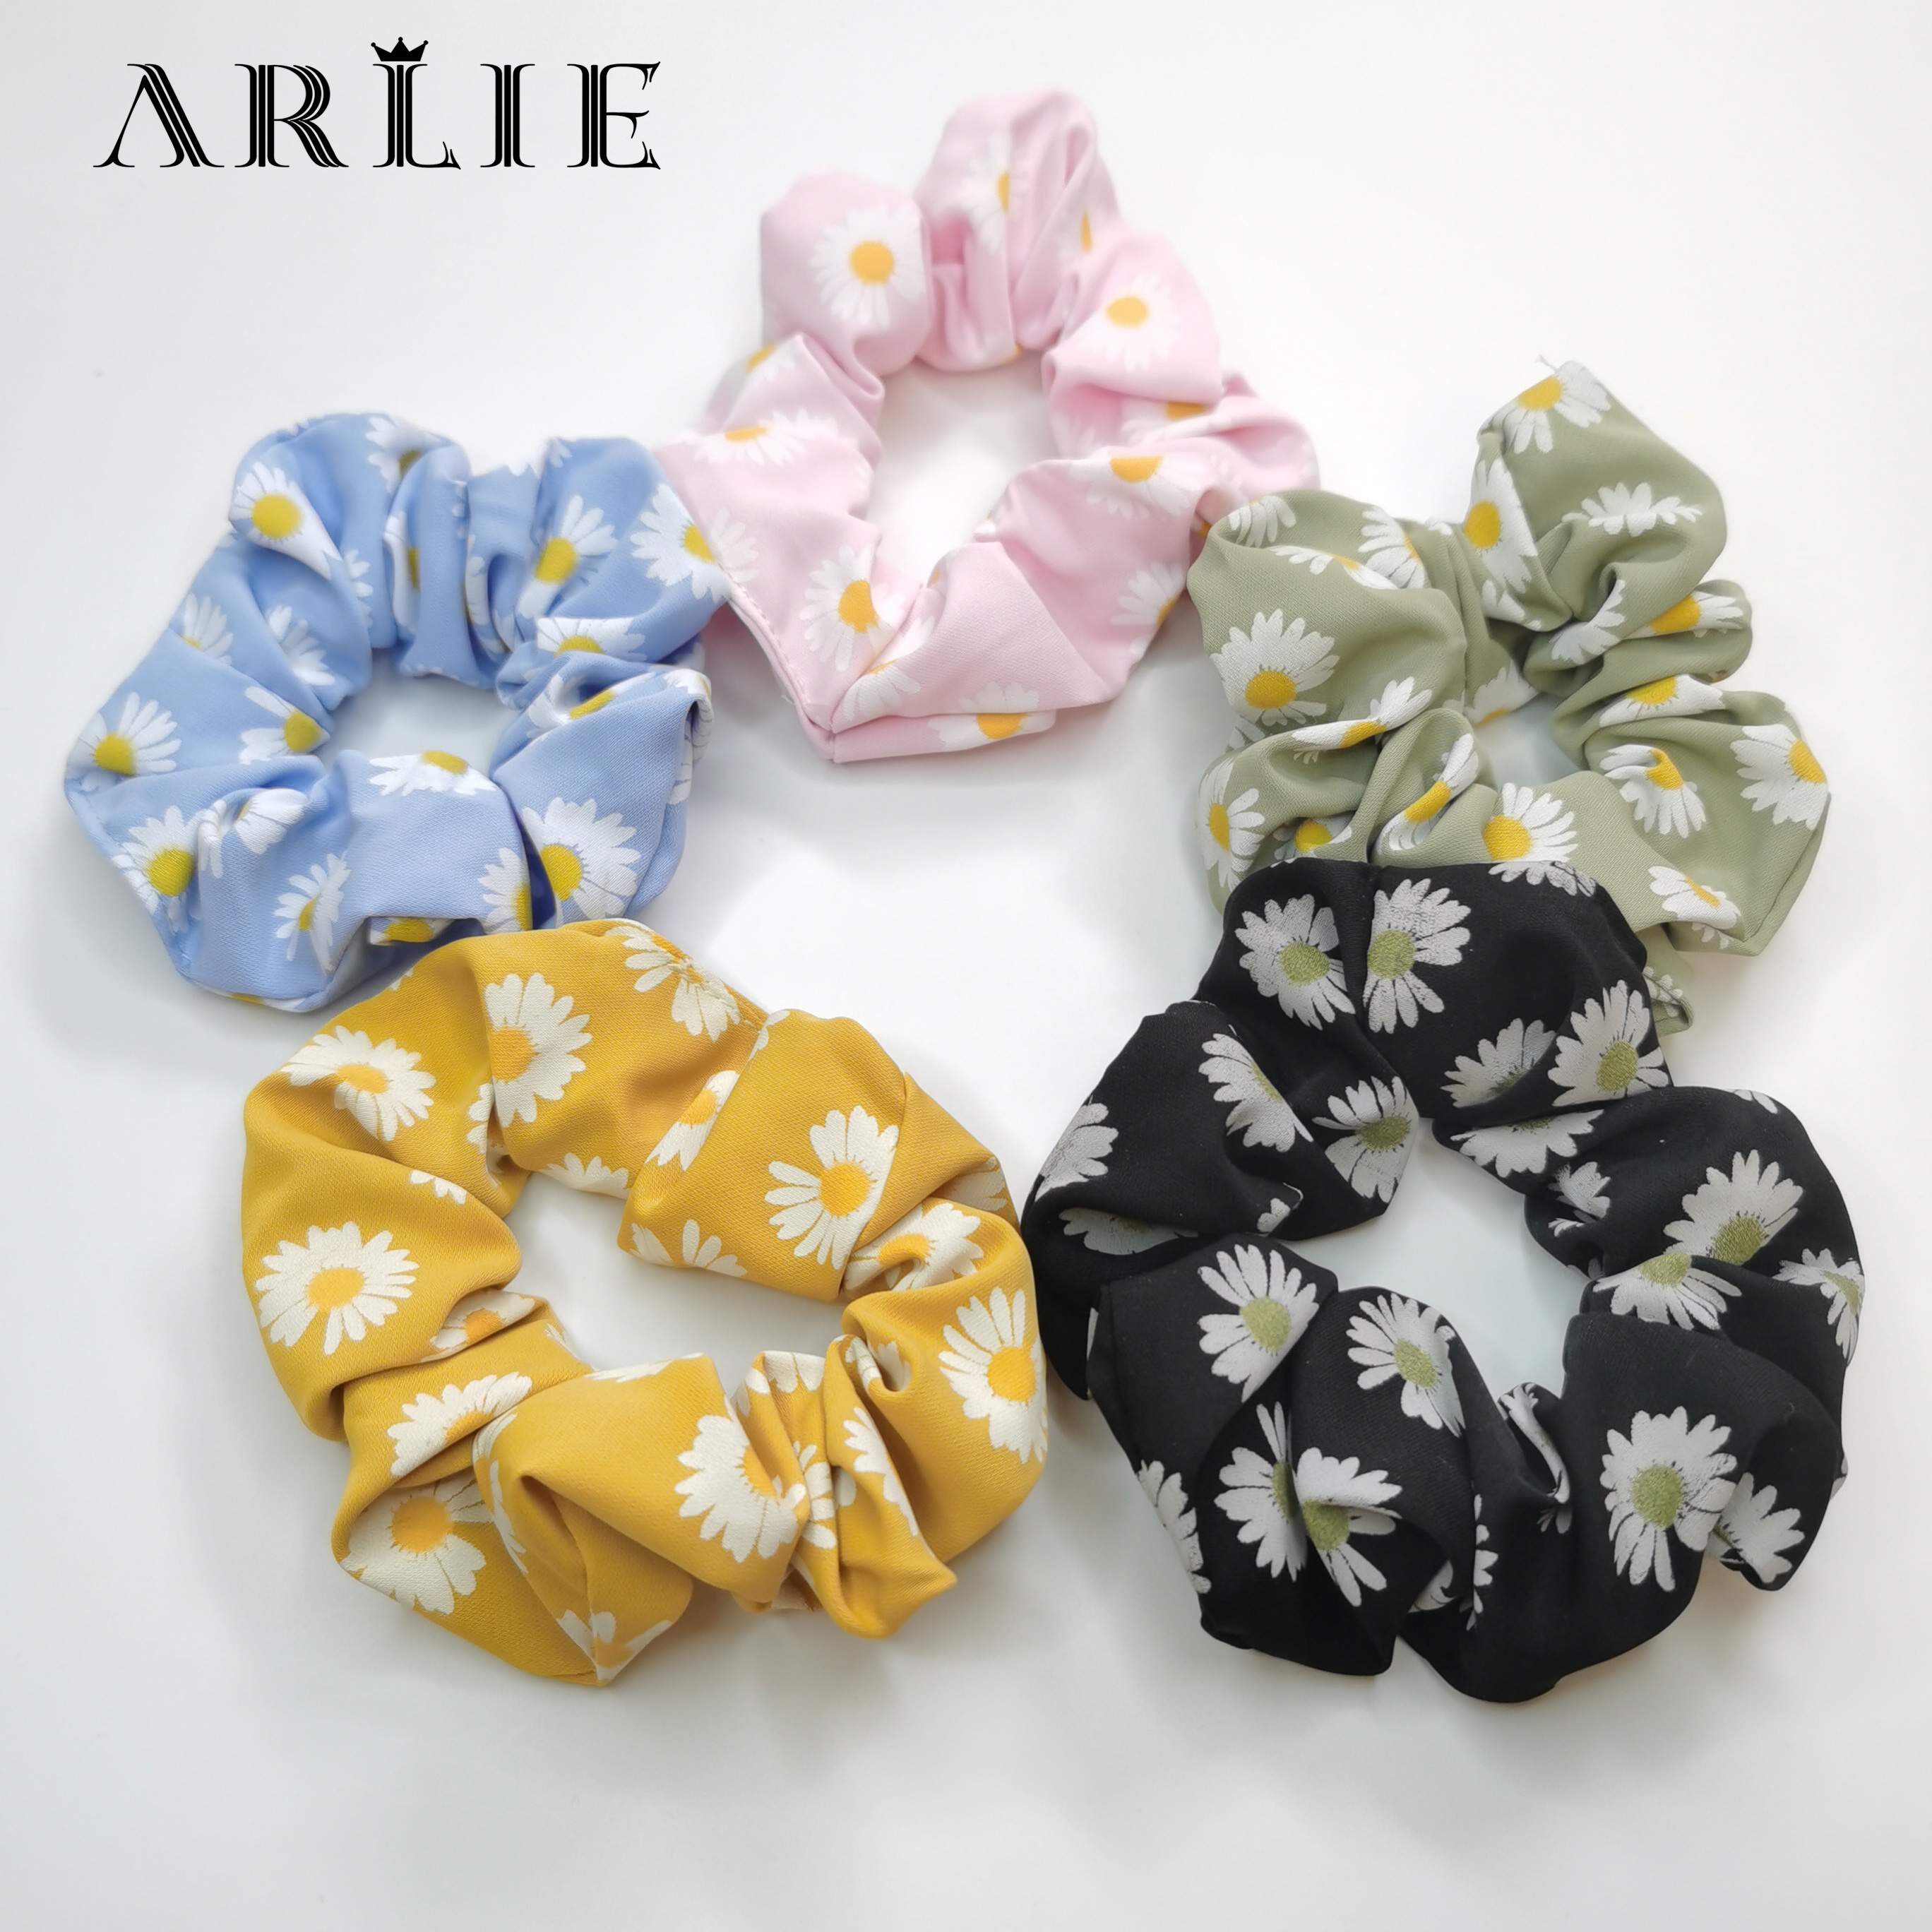 1PCS Women Sweet Daisy Hairband Scrunchies Floral Hair Ties Rope Girls Ponytail Fashion Hair Accessories Rubber Band Headwear